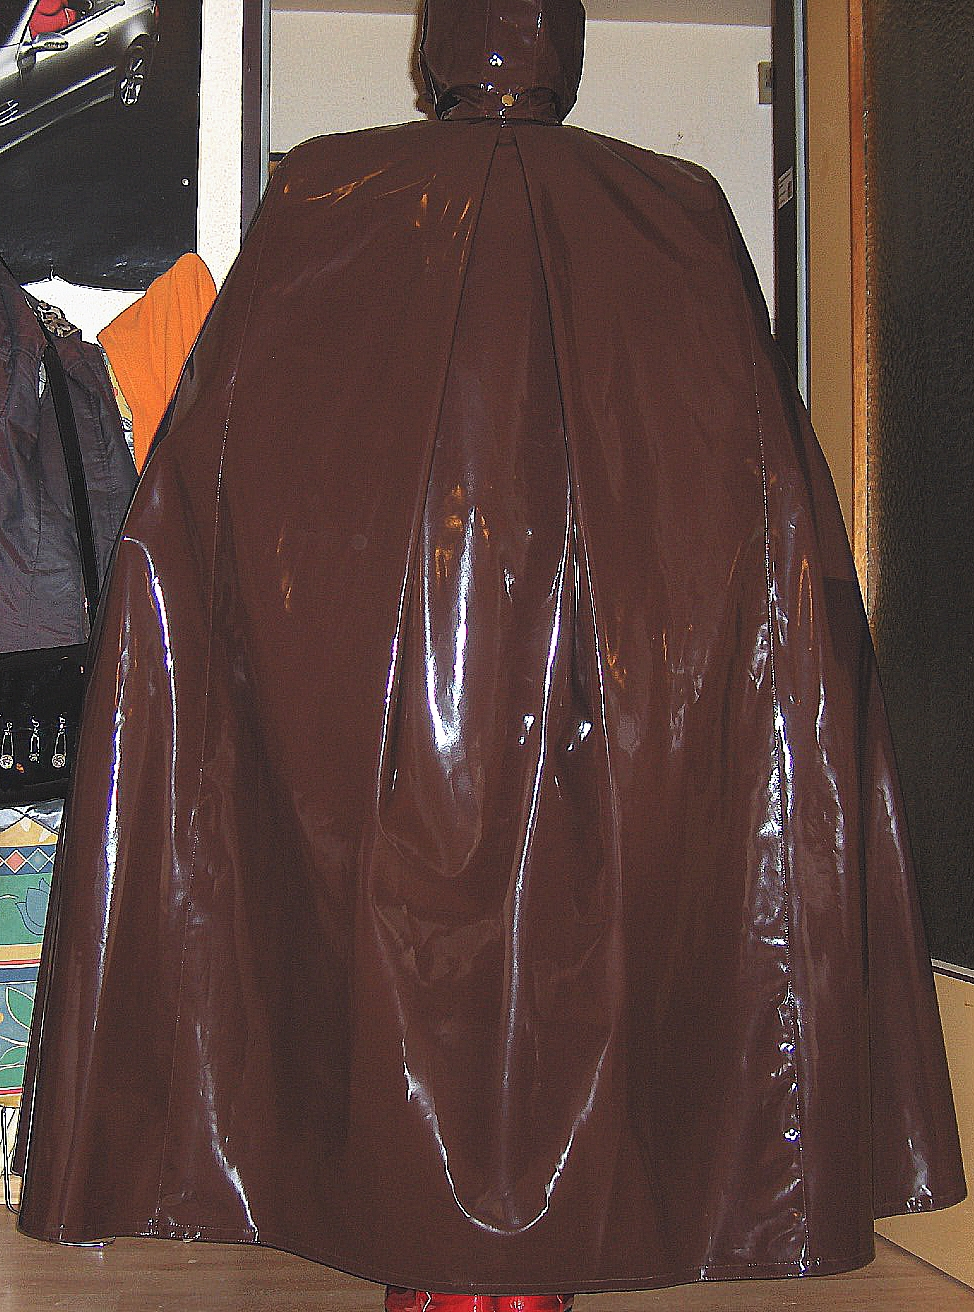 Brown shiny vinyl cape over Latex Outfit | Flickr - Photo Sharing!